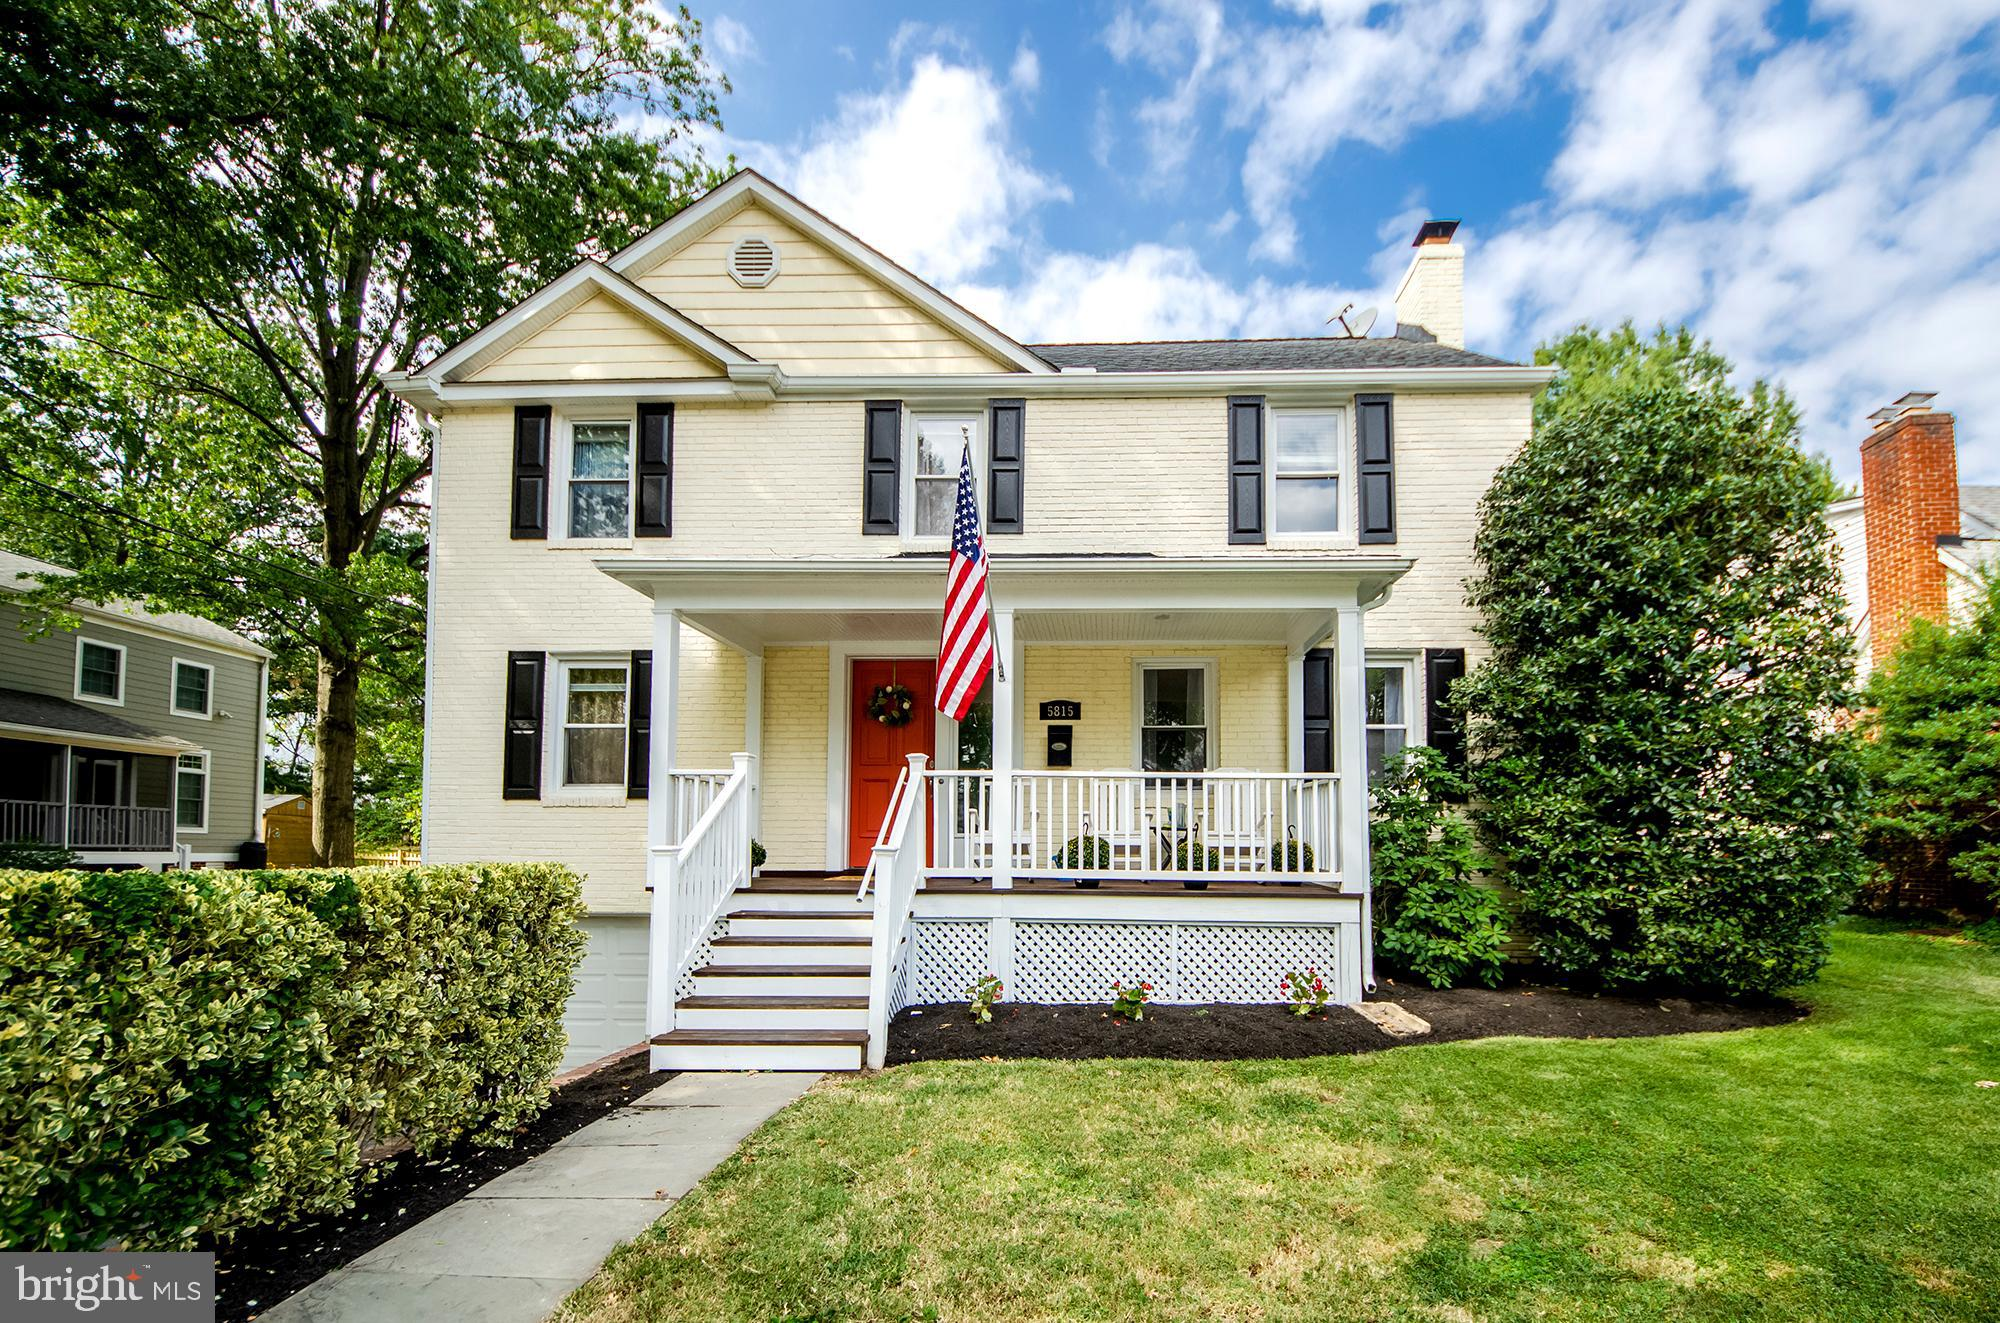 This one checks all the boxes! *Brimming with charm *Welcoming ice tea sipping front porch *2 level addition *Popular open configuration floor plan *Charming period details seamlessly blended with today's modern amenities *Living room with fireplace *Hardwood flooring *Main level 5th bedroom *Handy mudroom *Gourmet island kitchen with adjoining breakfast room, pantry and family room *4 upper level bedrooms *Vaulted owner's retreat with spa bath and walk-in closet *4 full baths * Finished lower level *Garage *Extensive patio space *Amazing locale backing to Parkhurst park and  so close to the wonderful Westover village, parks, library and less than a mile to EFC Metro! Sellers request any offers be submitted by 12 noon on Tuesday 9/24/19